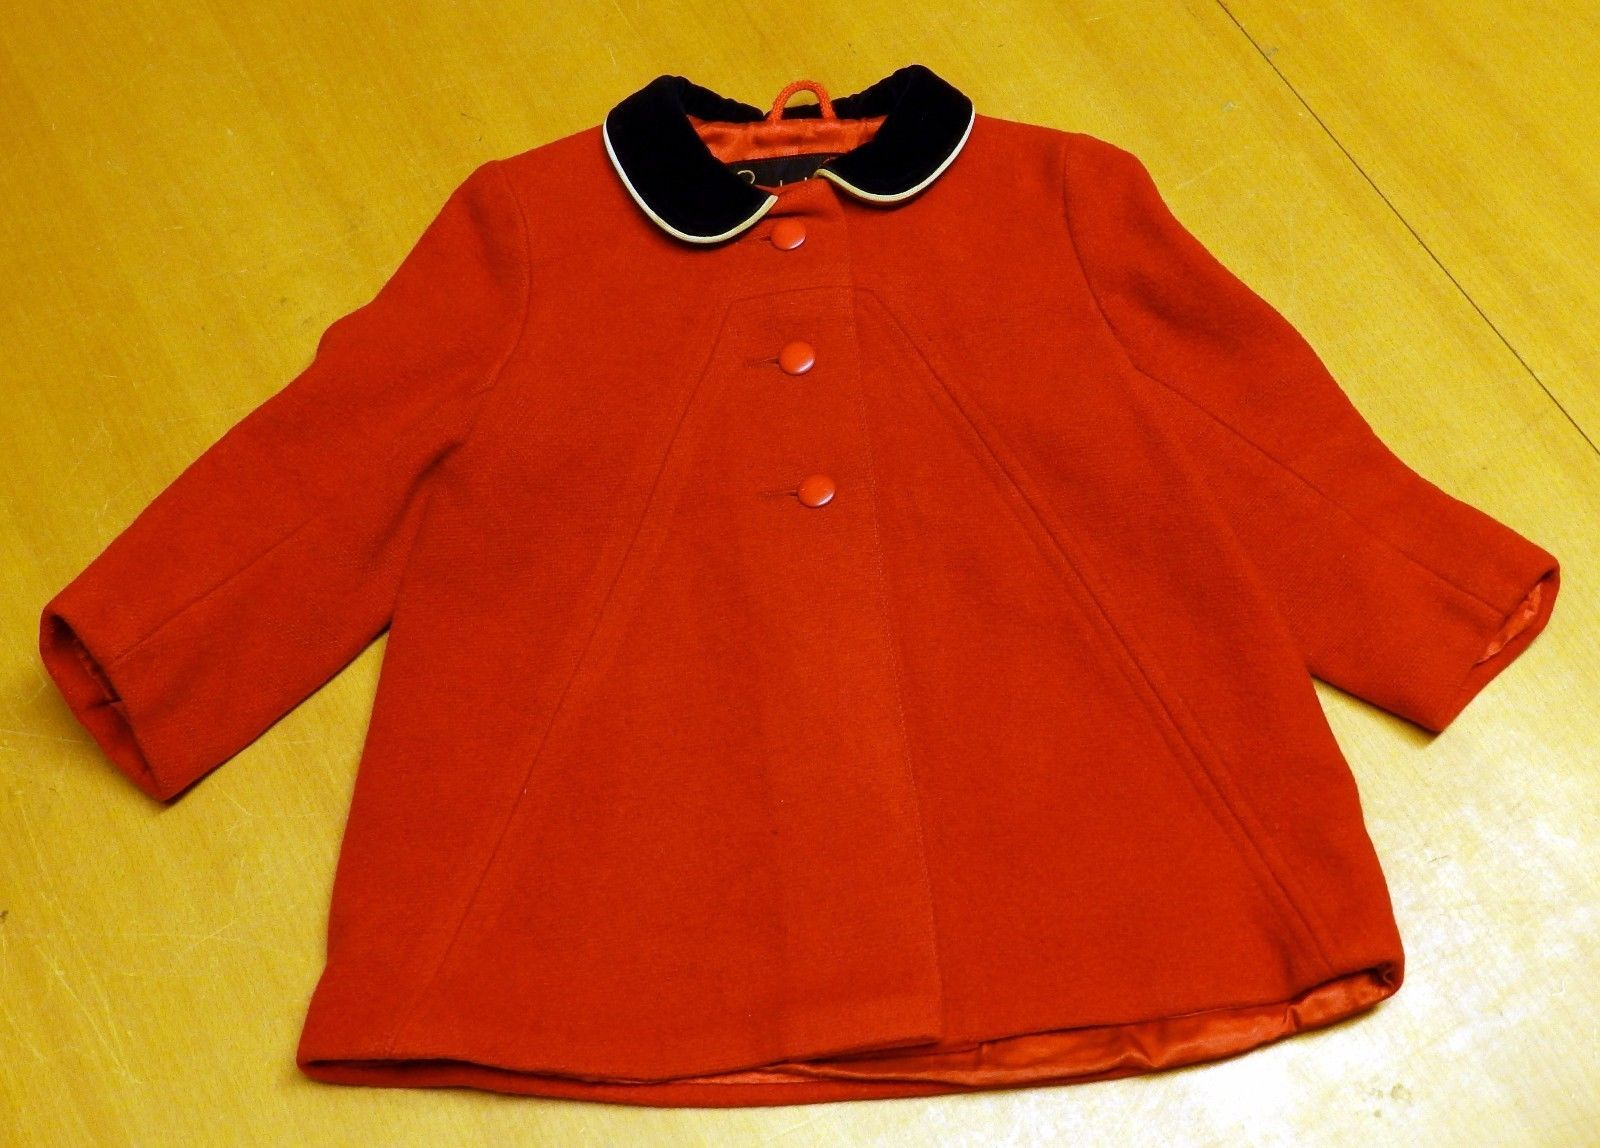 Details about Adorable Vintage 'Ladybird' Childrens Red Coat w ...